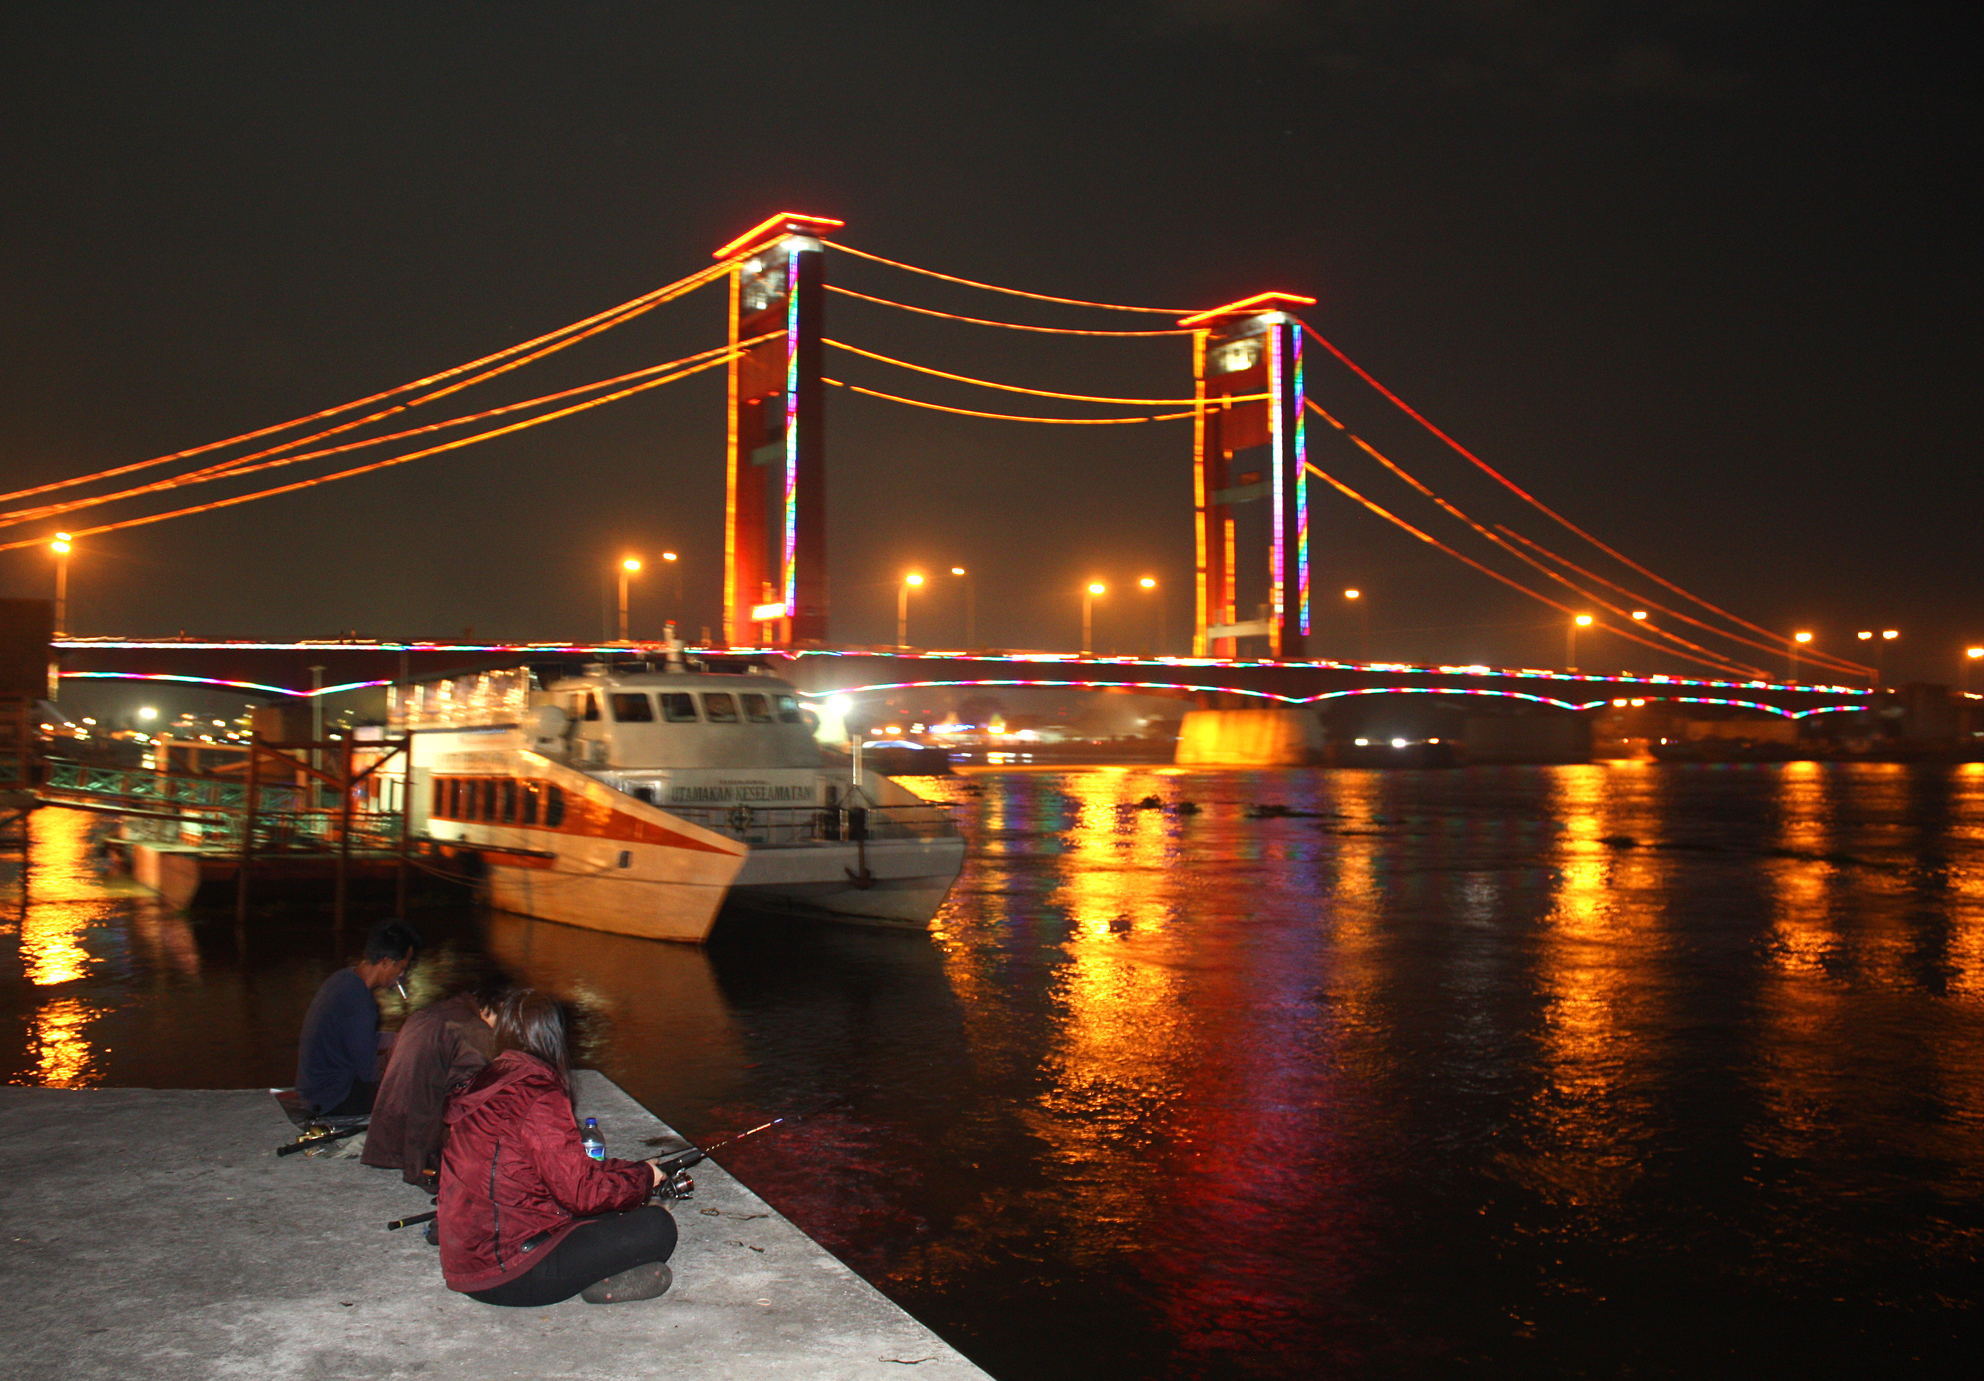 FileAmpera Bridge at Night Palembangjpg  Wikimedia Commons